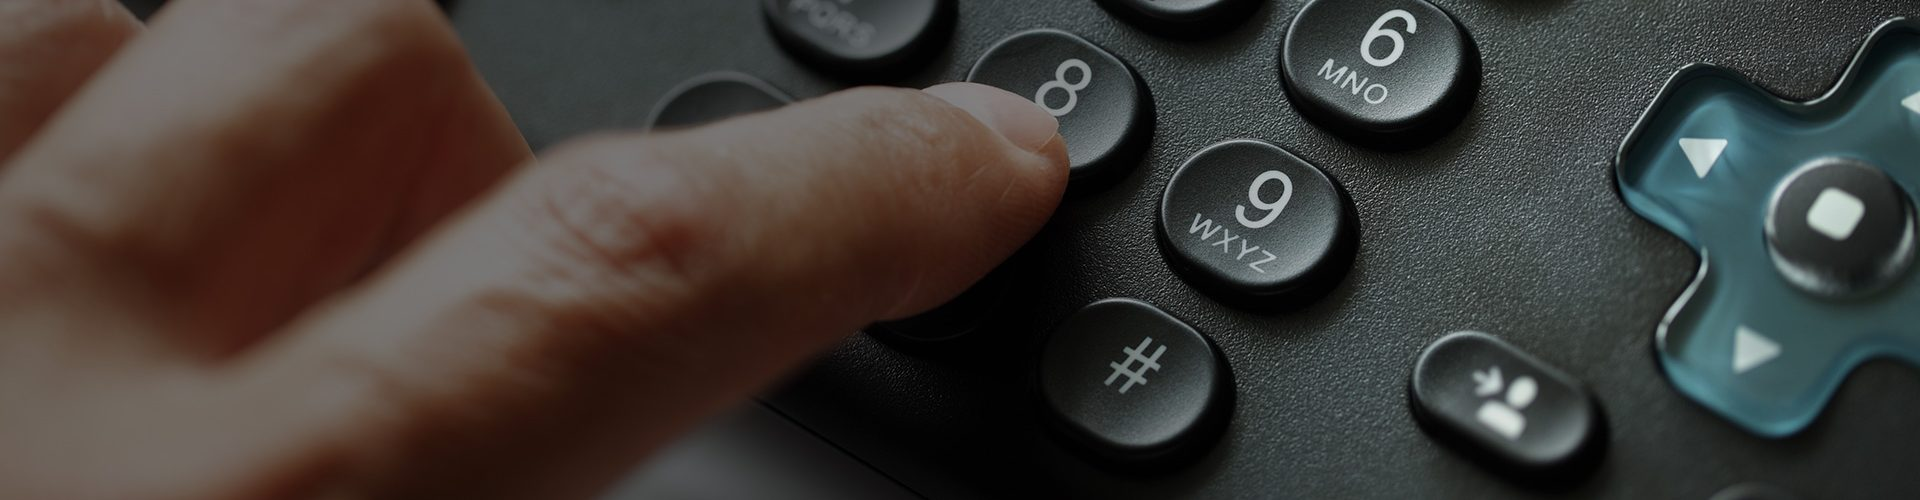 person person number on keypad to contact us